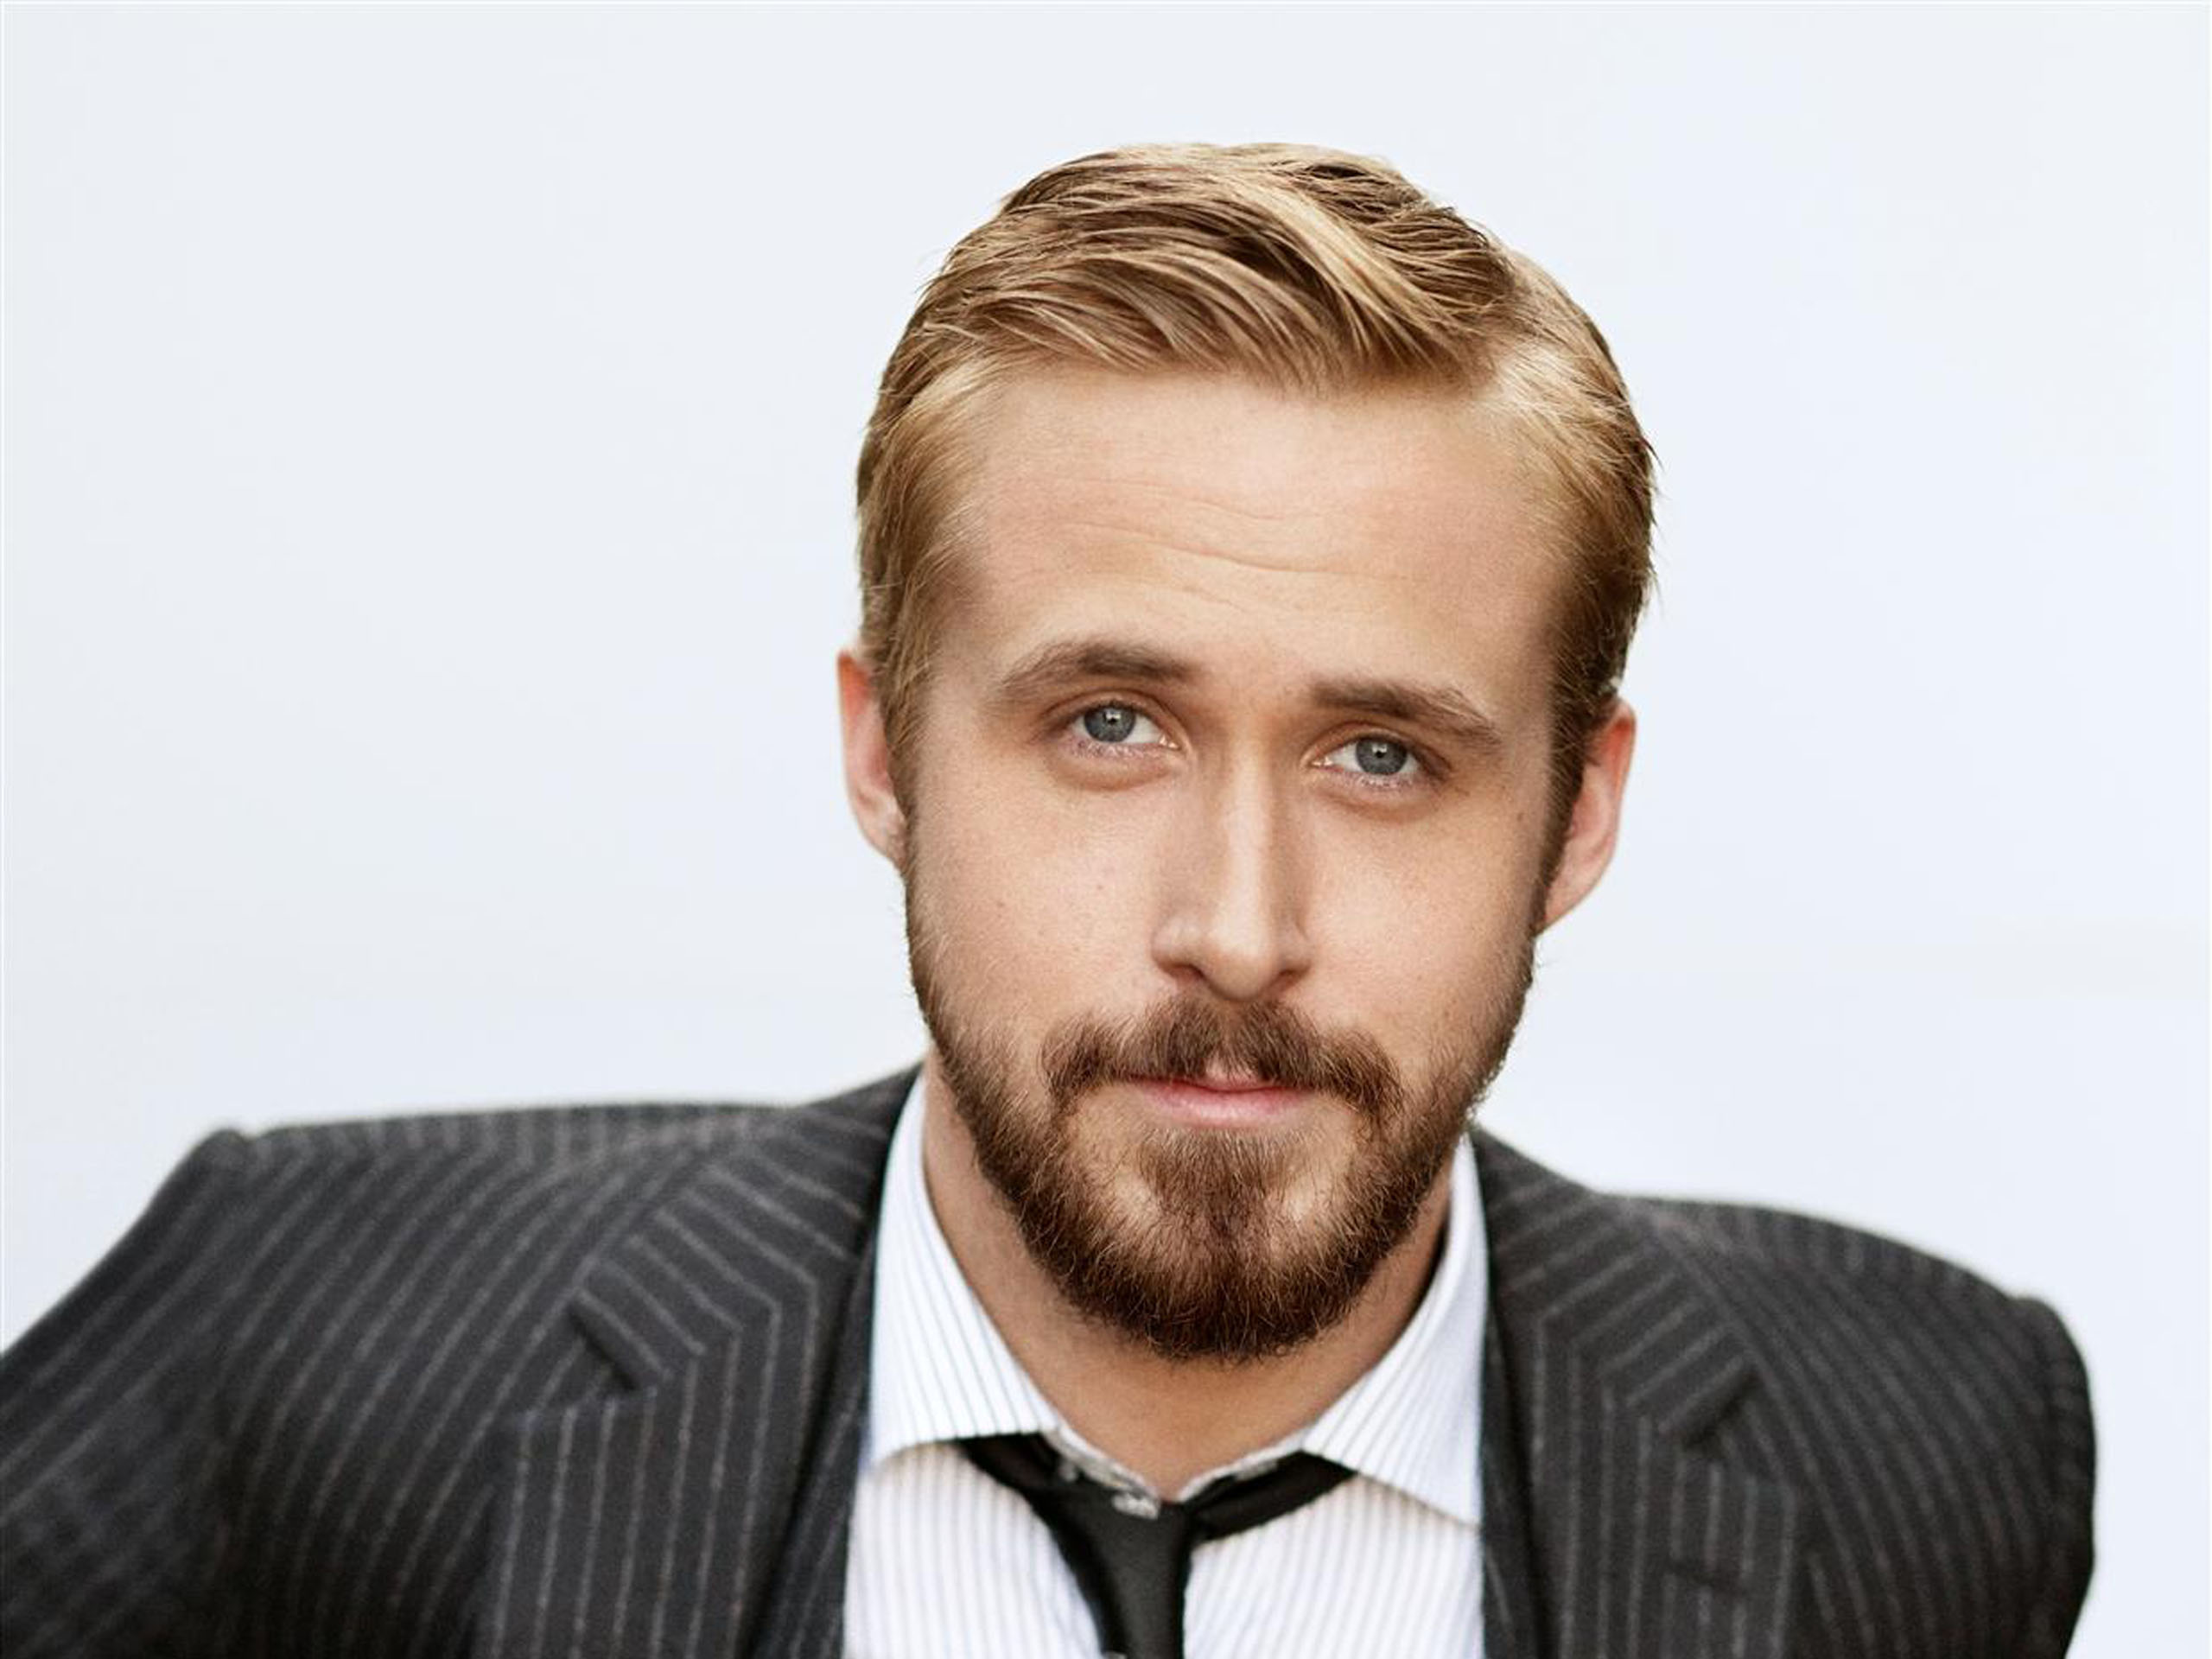 Ryan Gosling facial hair